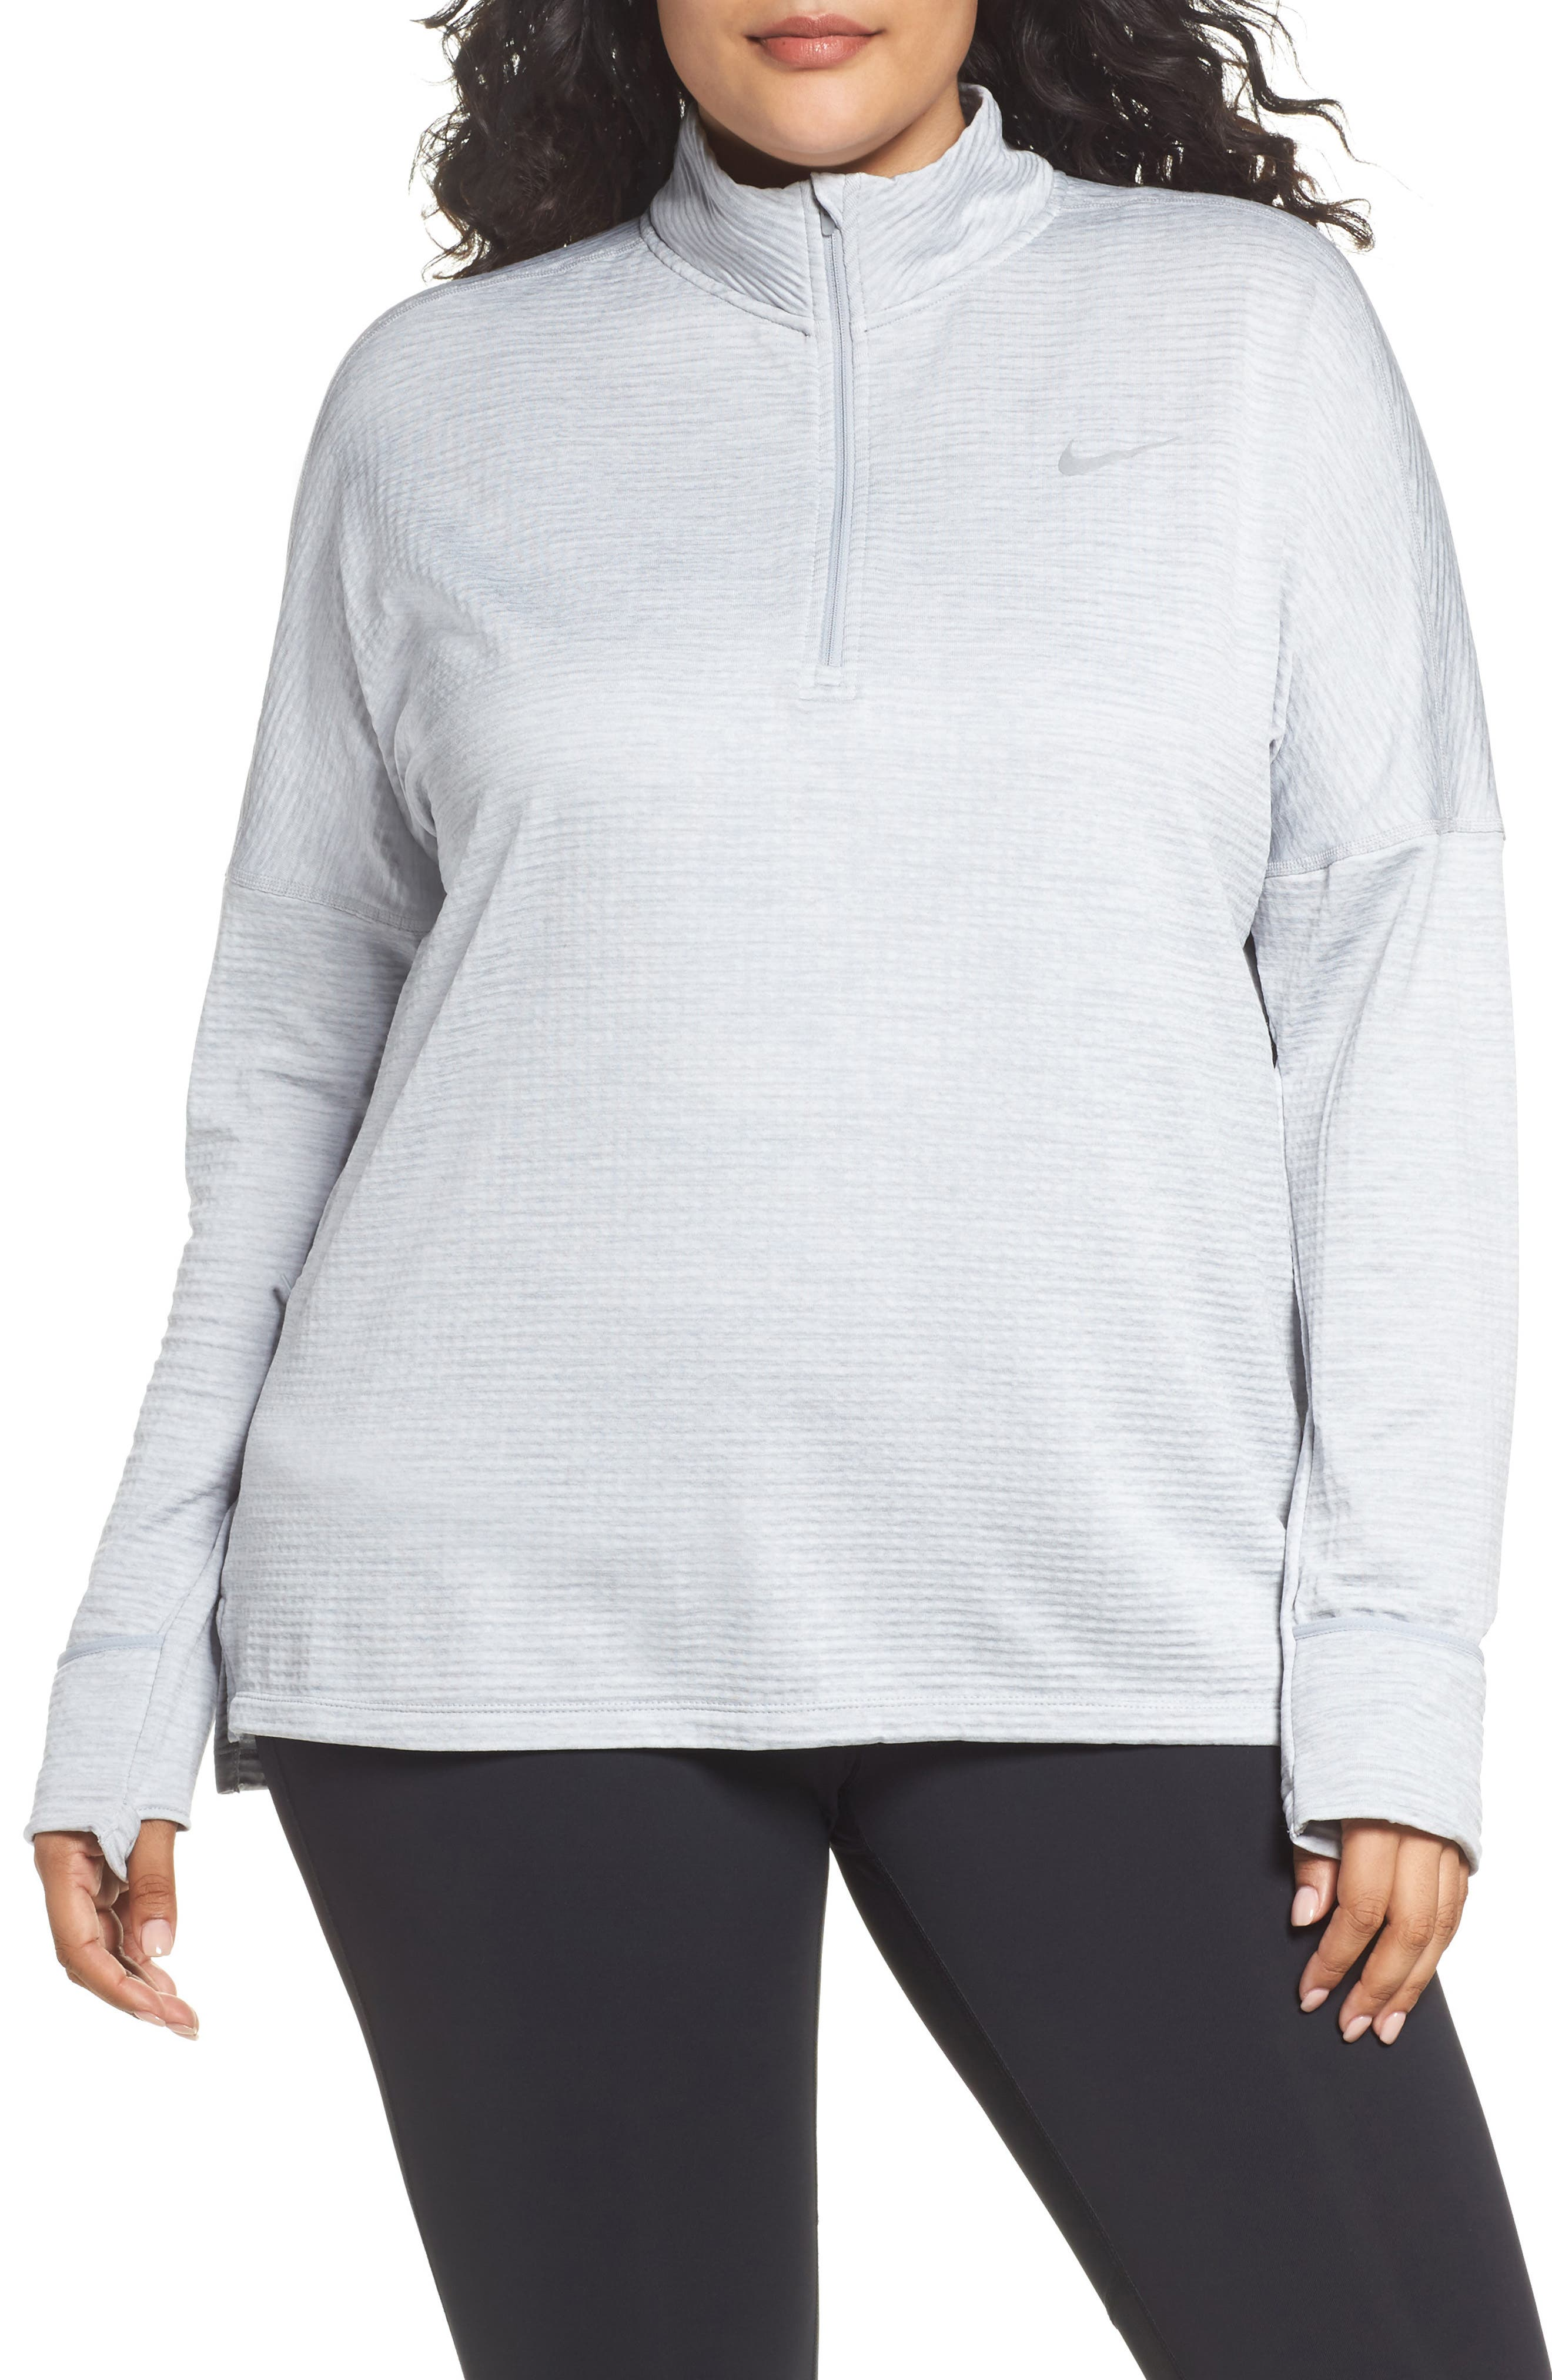 Main Image - Nike Sphere Element Long Sleeve Running Top (Plus Size)